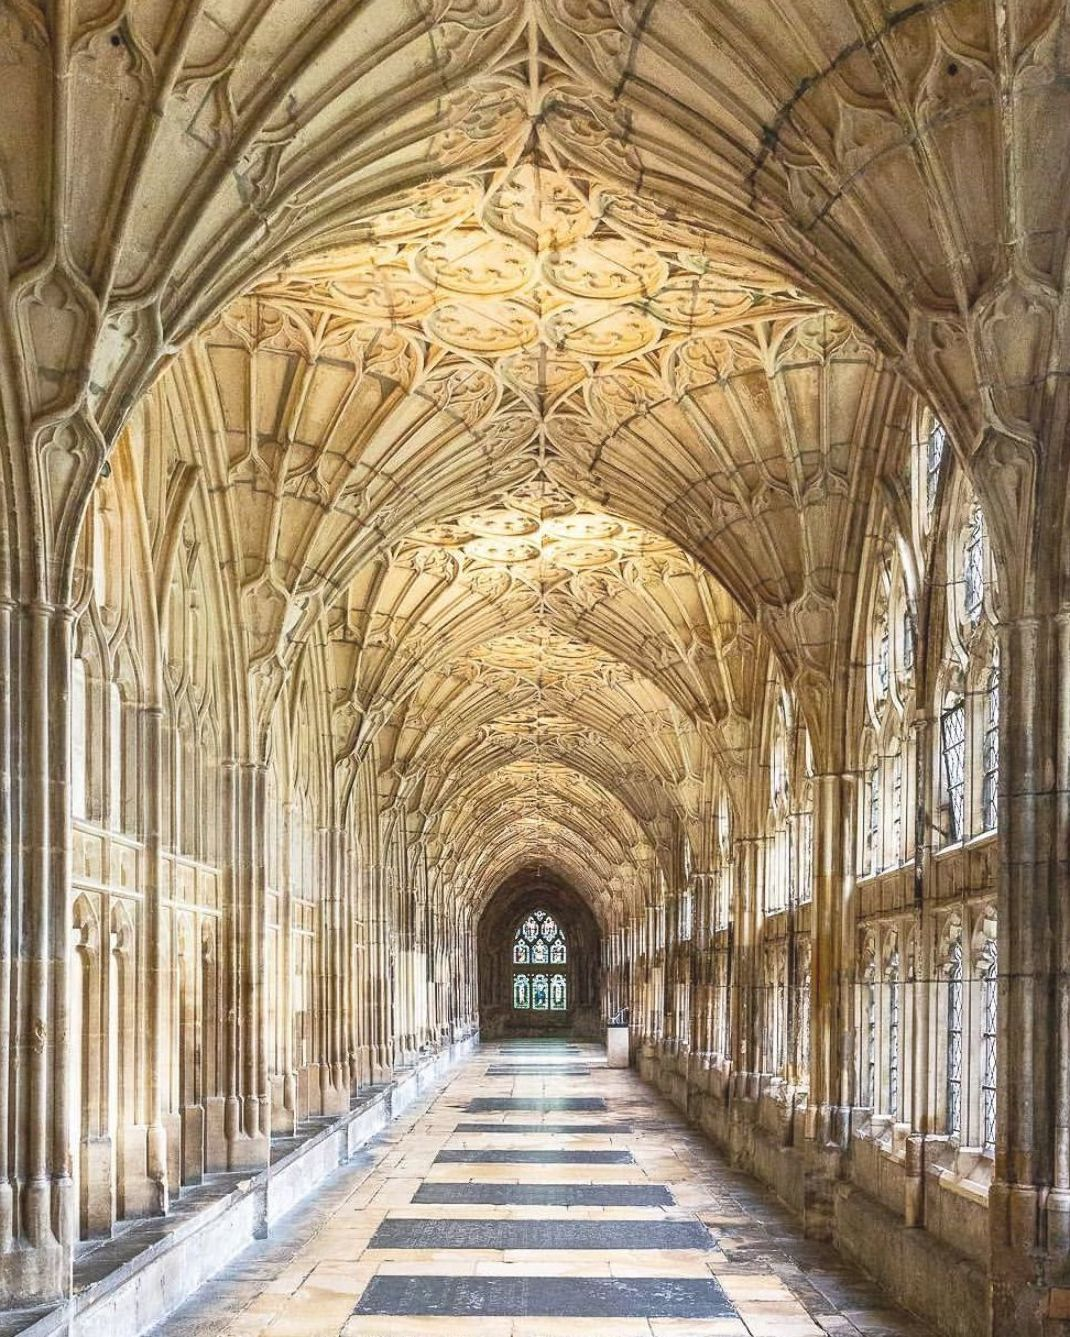 The Beautiful Cloisters In Gloucester Cathedral In England The Harry Potter Movies Were Filmed Here Click Th Gloucester Cathedral Cathedral Gothic Cathedrals